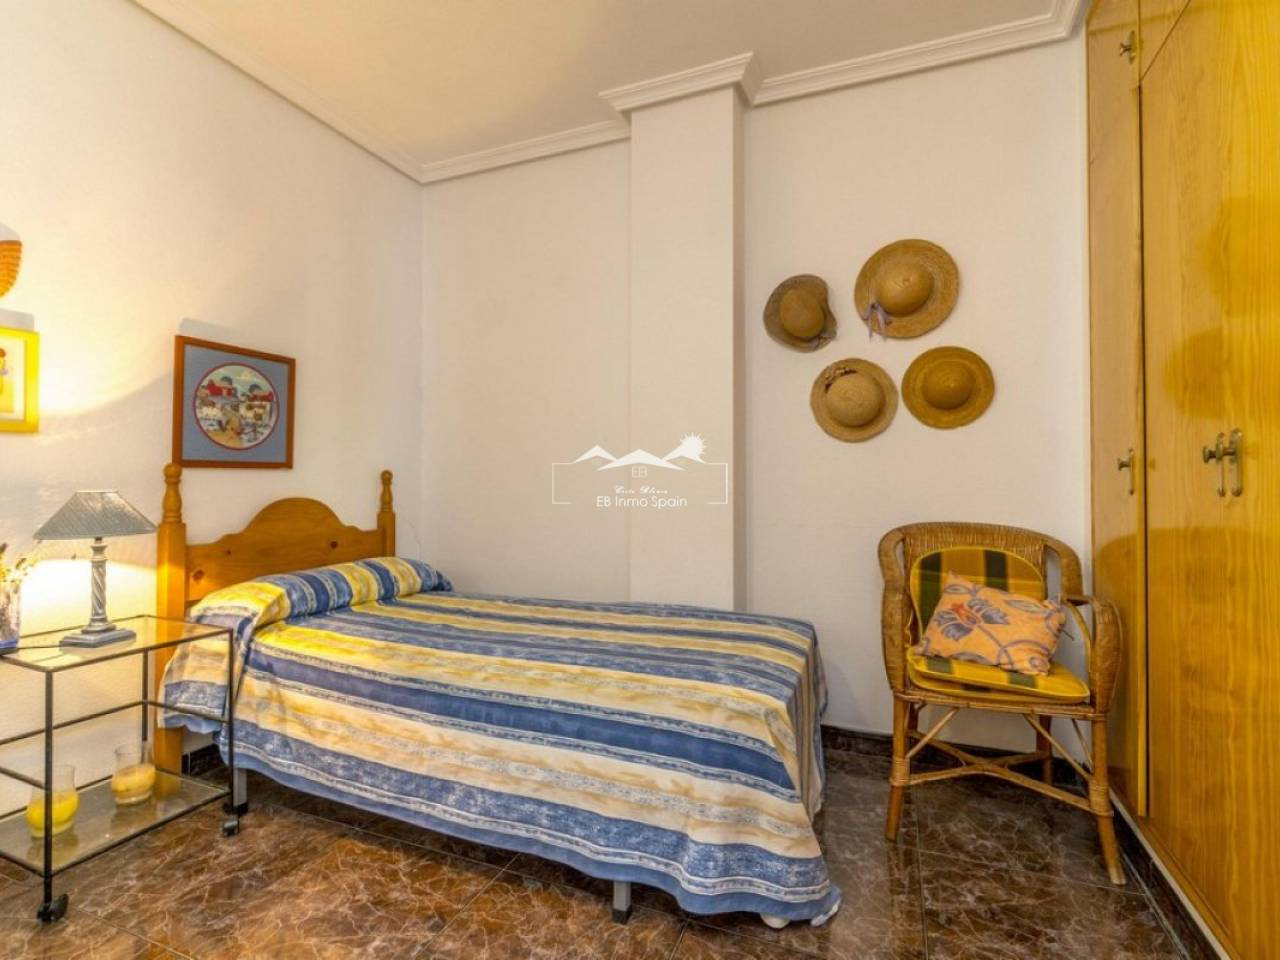 Seconde main - Appartement - Pilar De La Horadada - PUEBLO LATINO